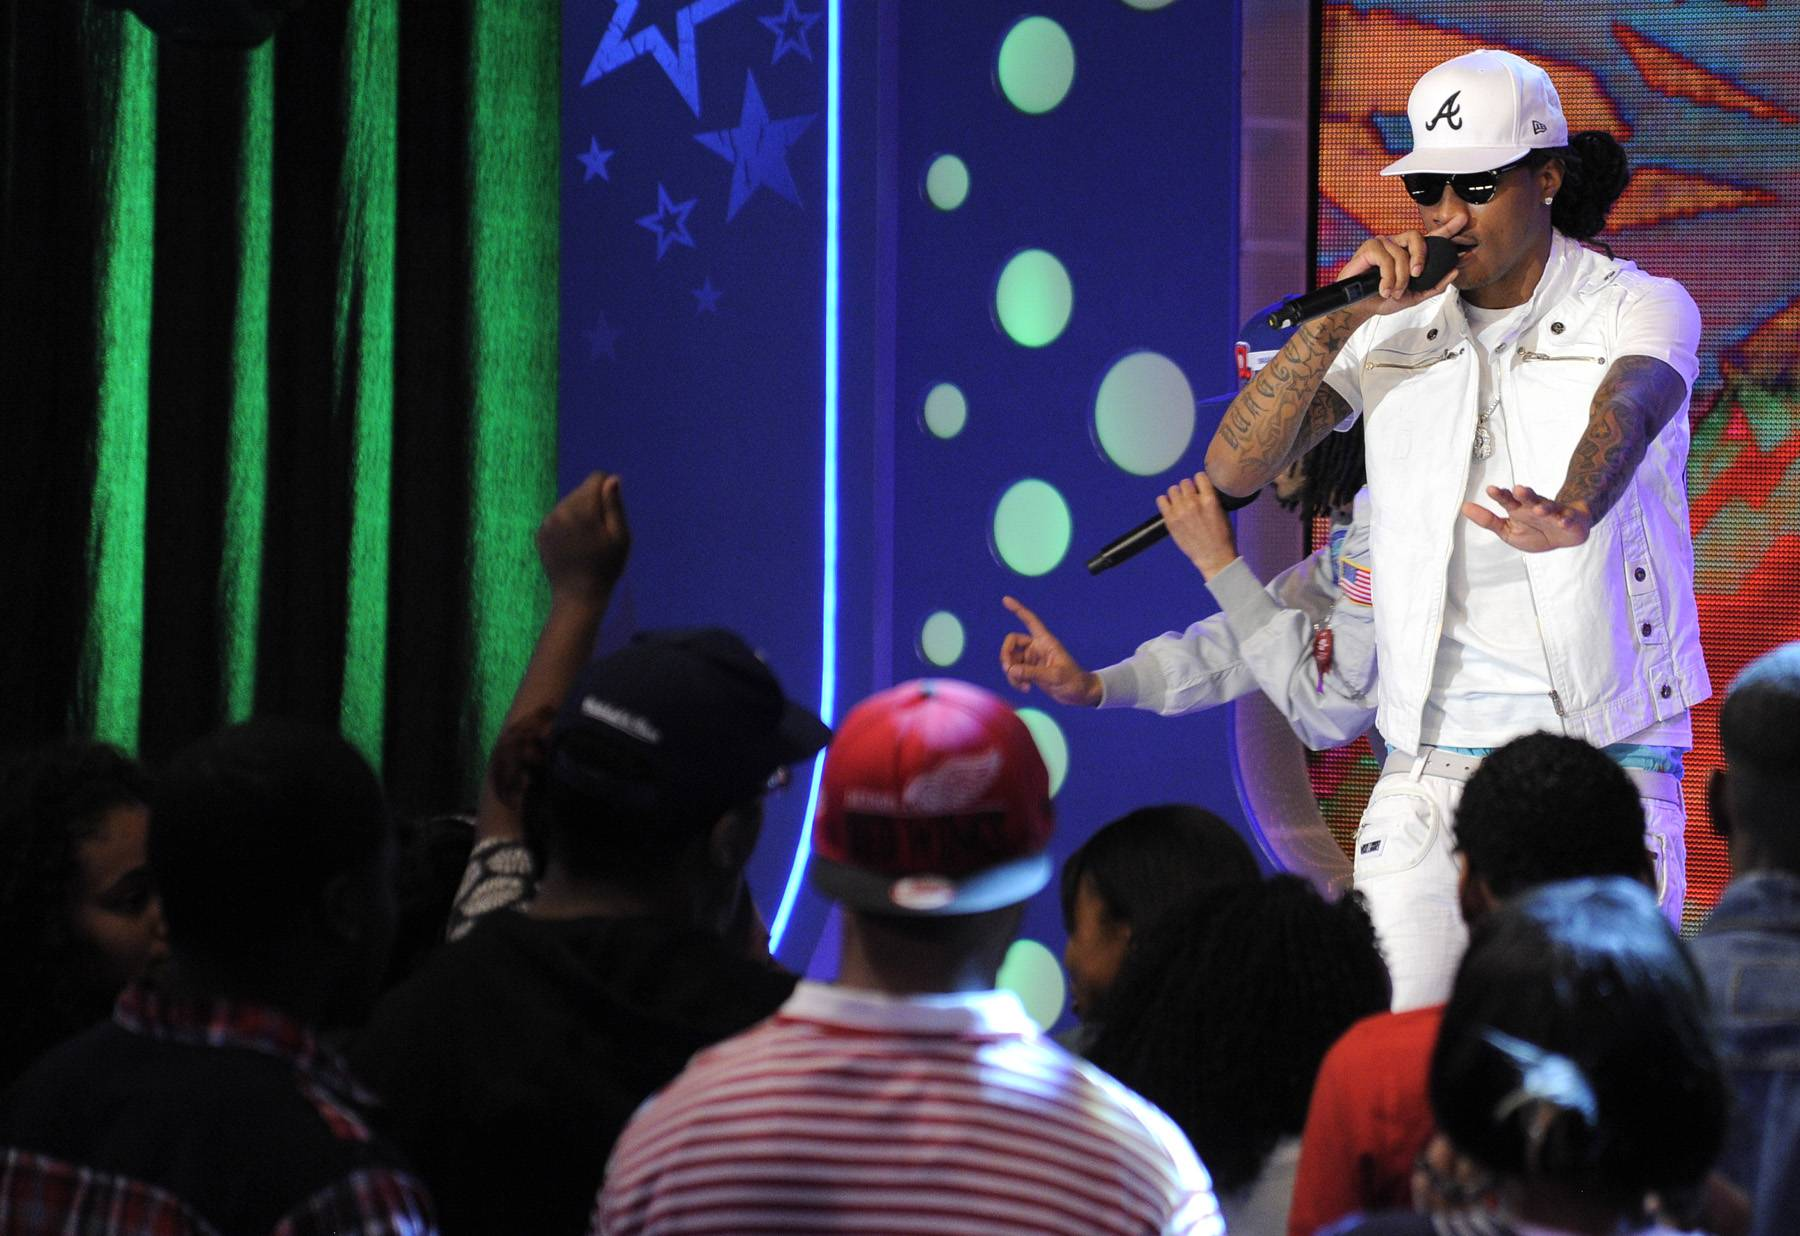 You Can't Stop His Swag - Future performs at 106 & Park, April 20, 2012. (Photo: John Ricard / BET)